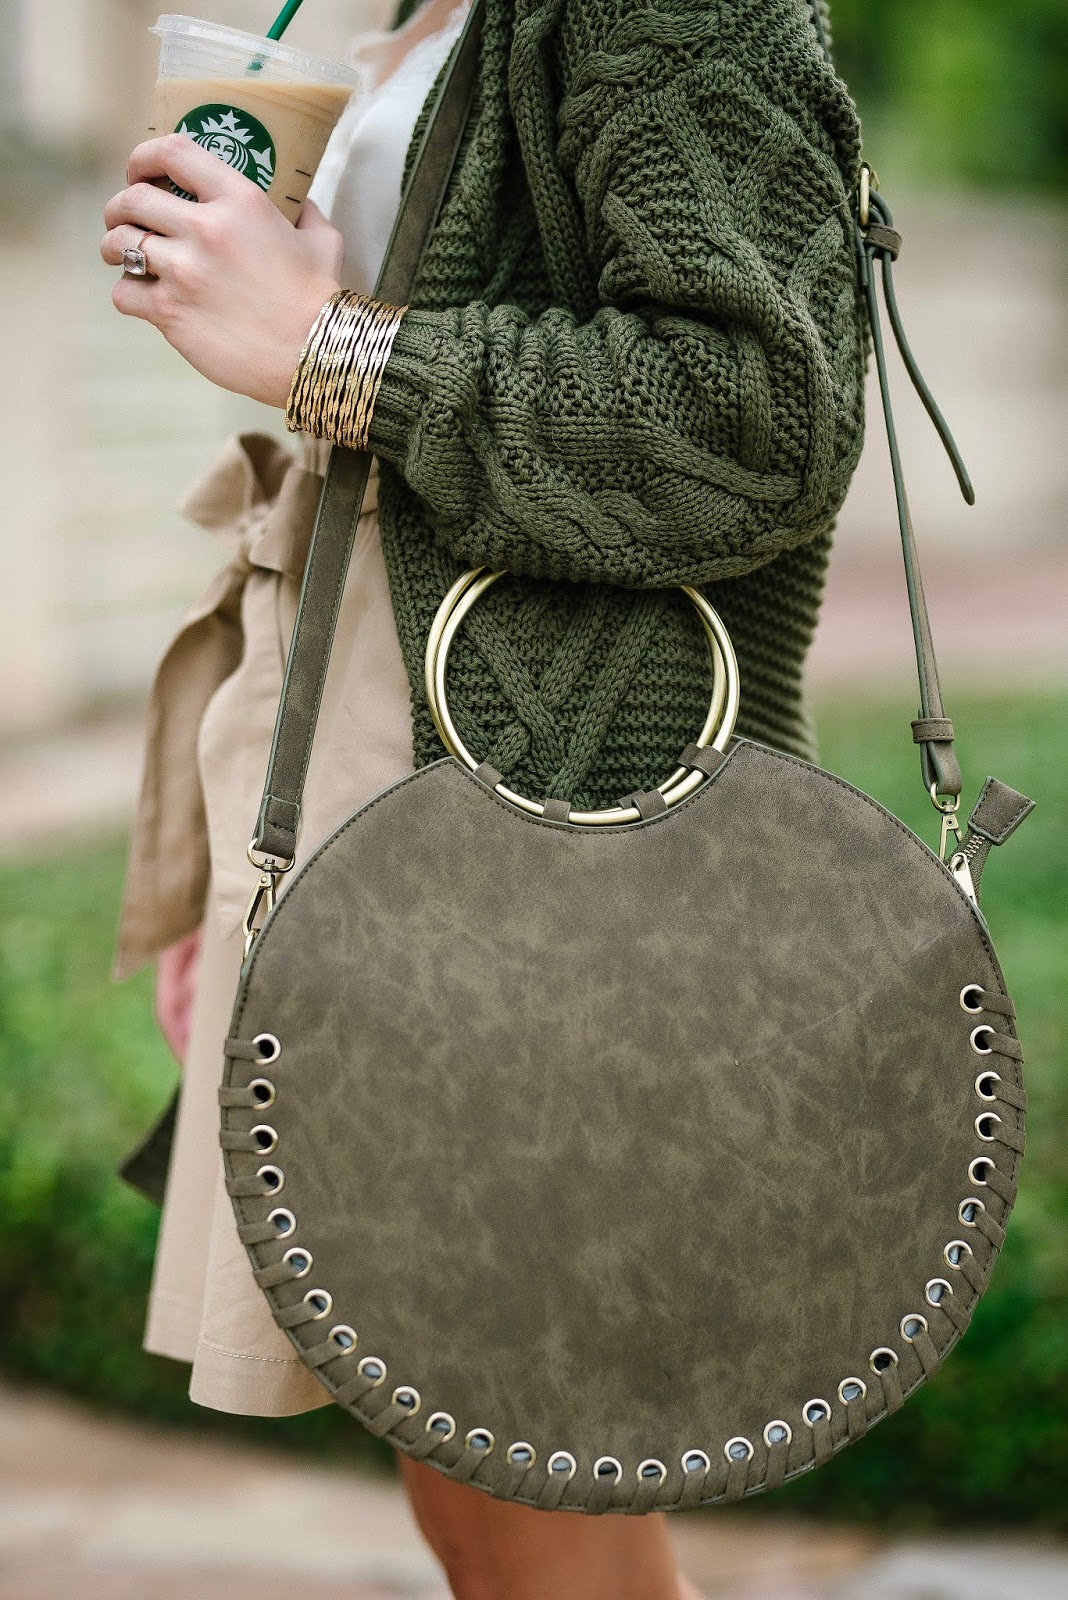 Twinning With My Starbucks Iced Coffee: $88 Circle Tote, $55 Paper Bag Waist Skirt & $48 Olive Green Cardigan - Something Delightful Blog